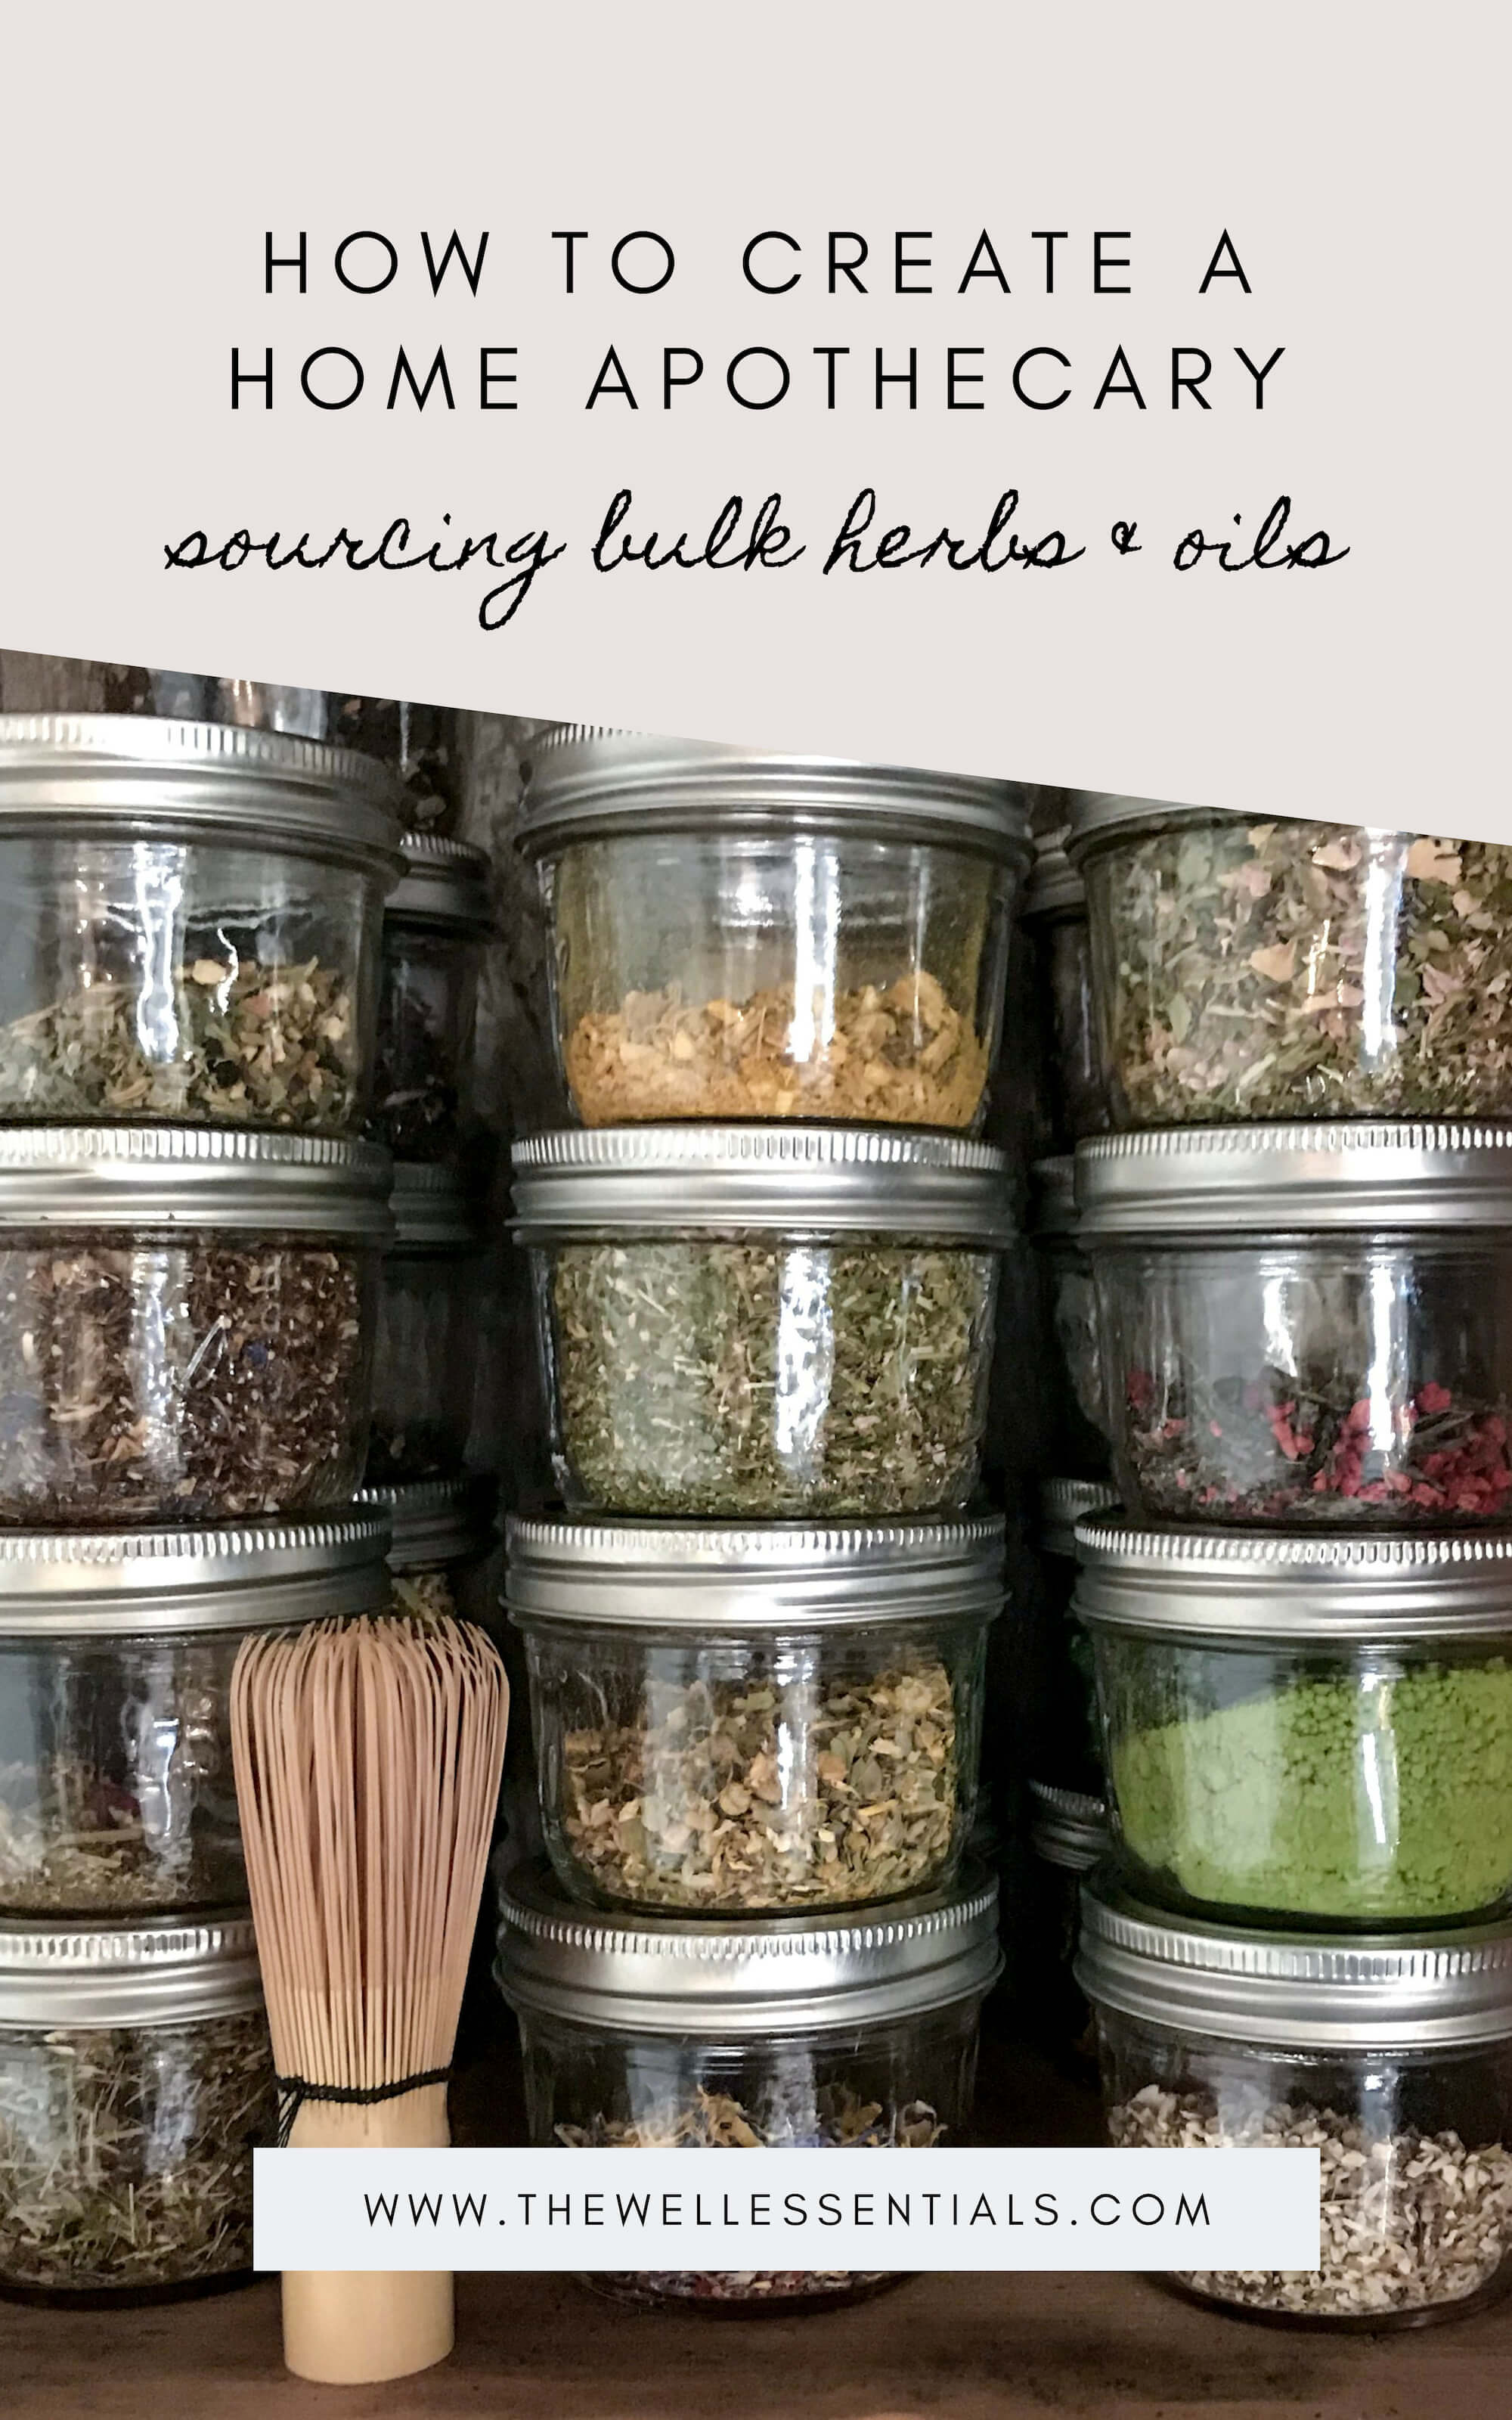 How To Create A Home Herbal Apothecary: Sourcing Bulk Spices and Herbs